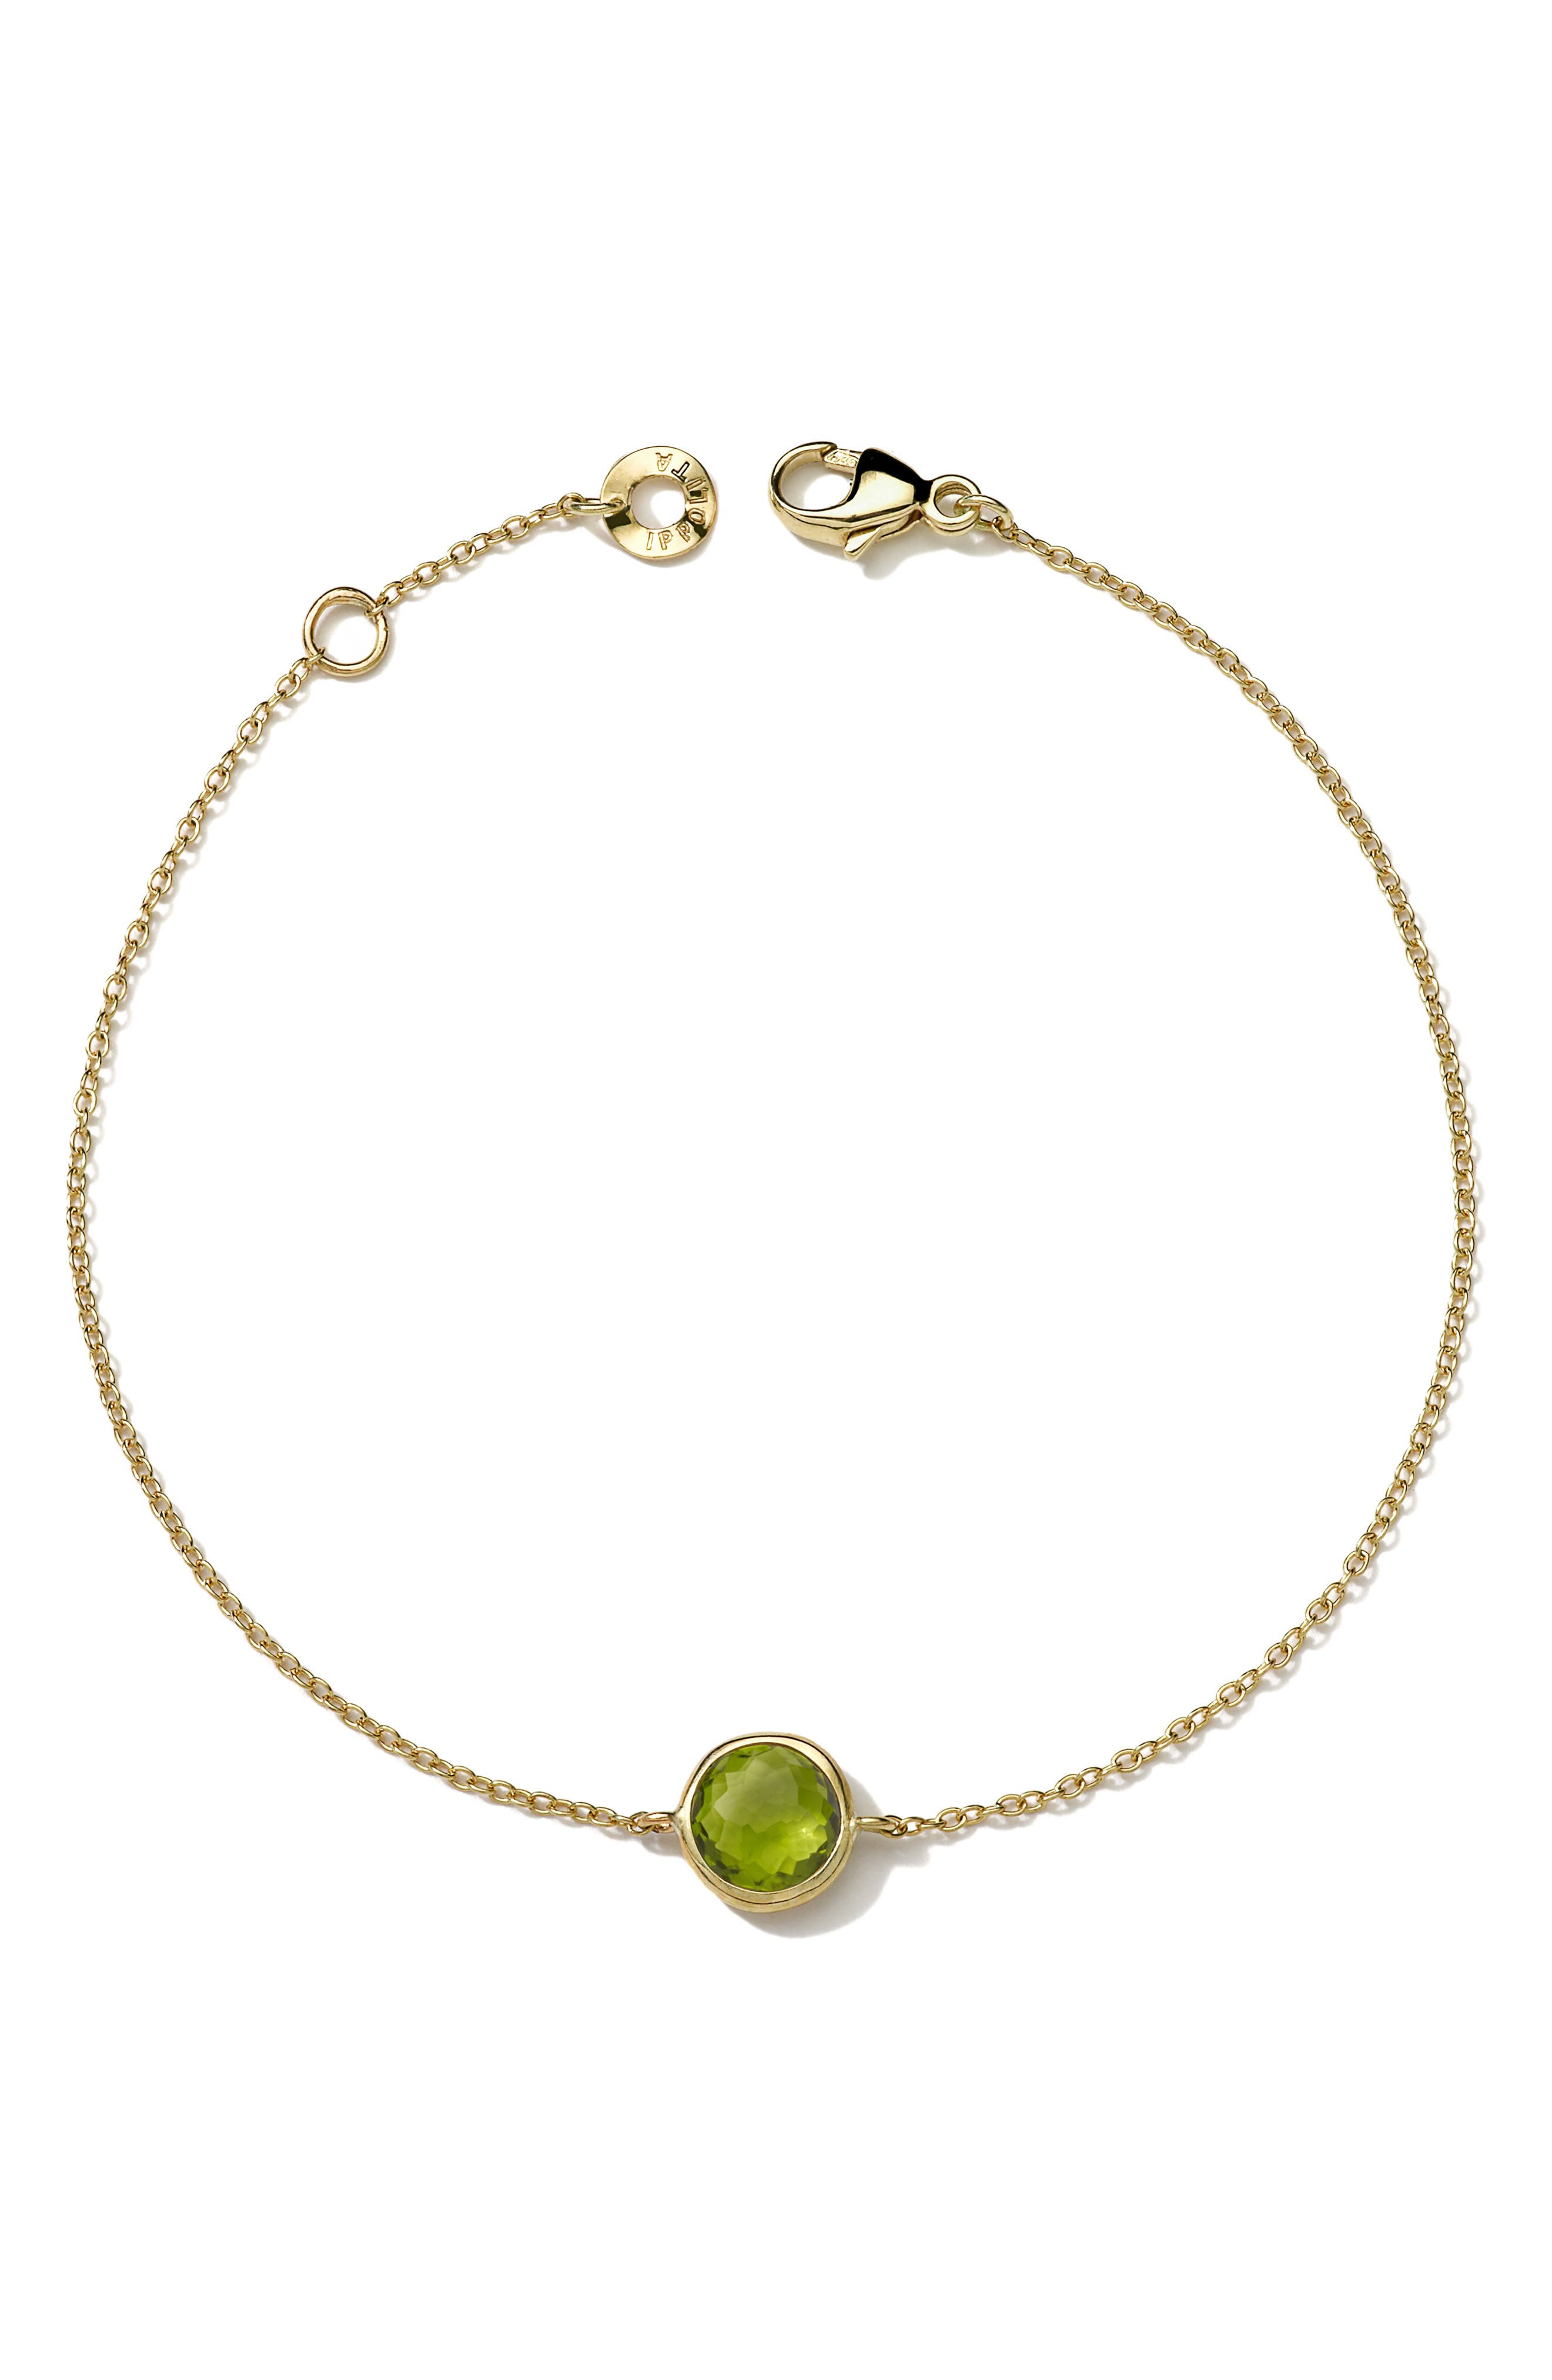 IPPOLITA Lollipop Mini Gemstone Bracelet, Main, color, 306